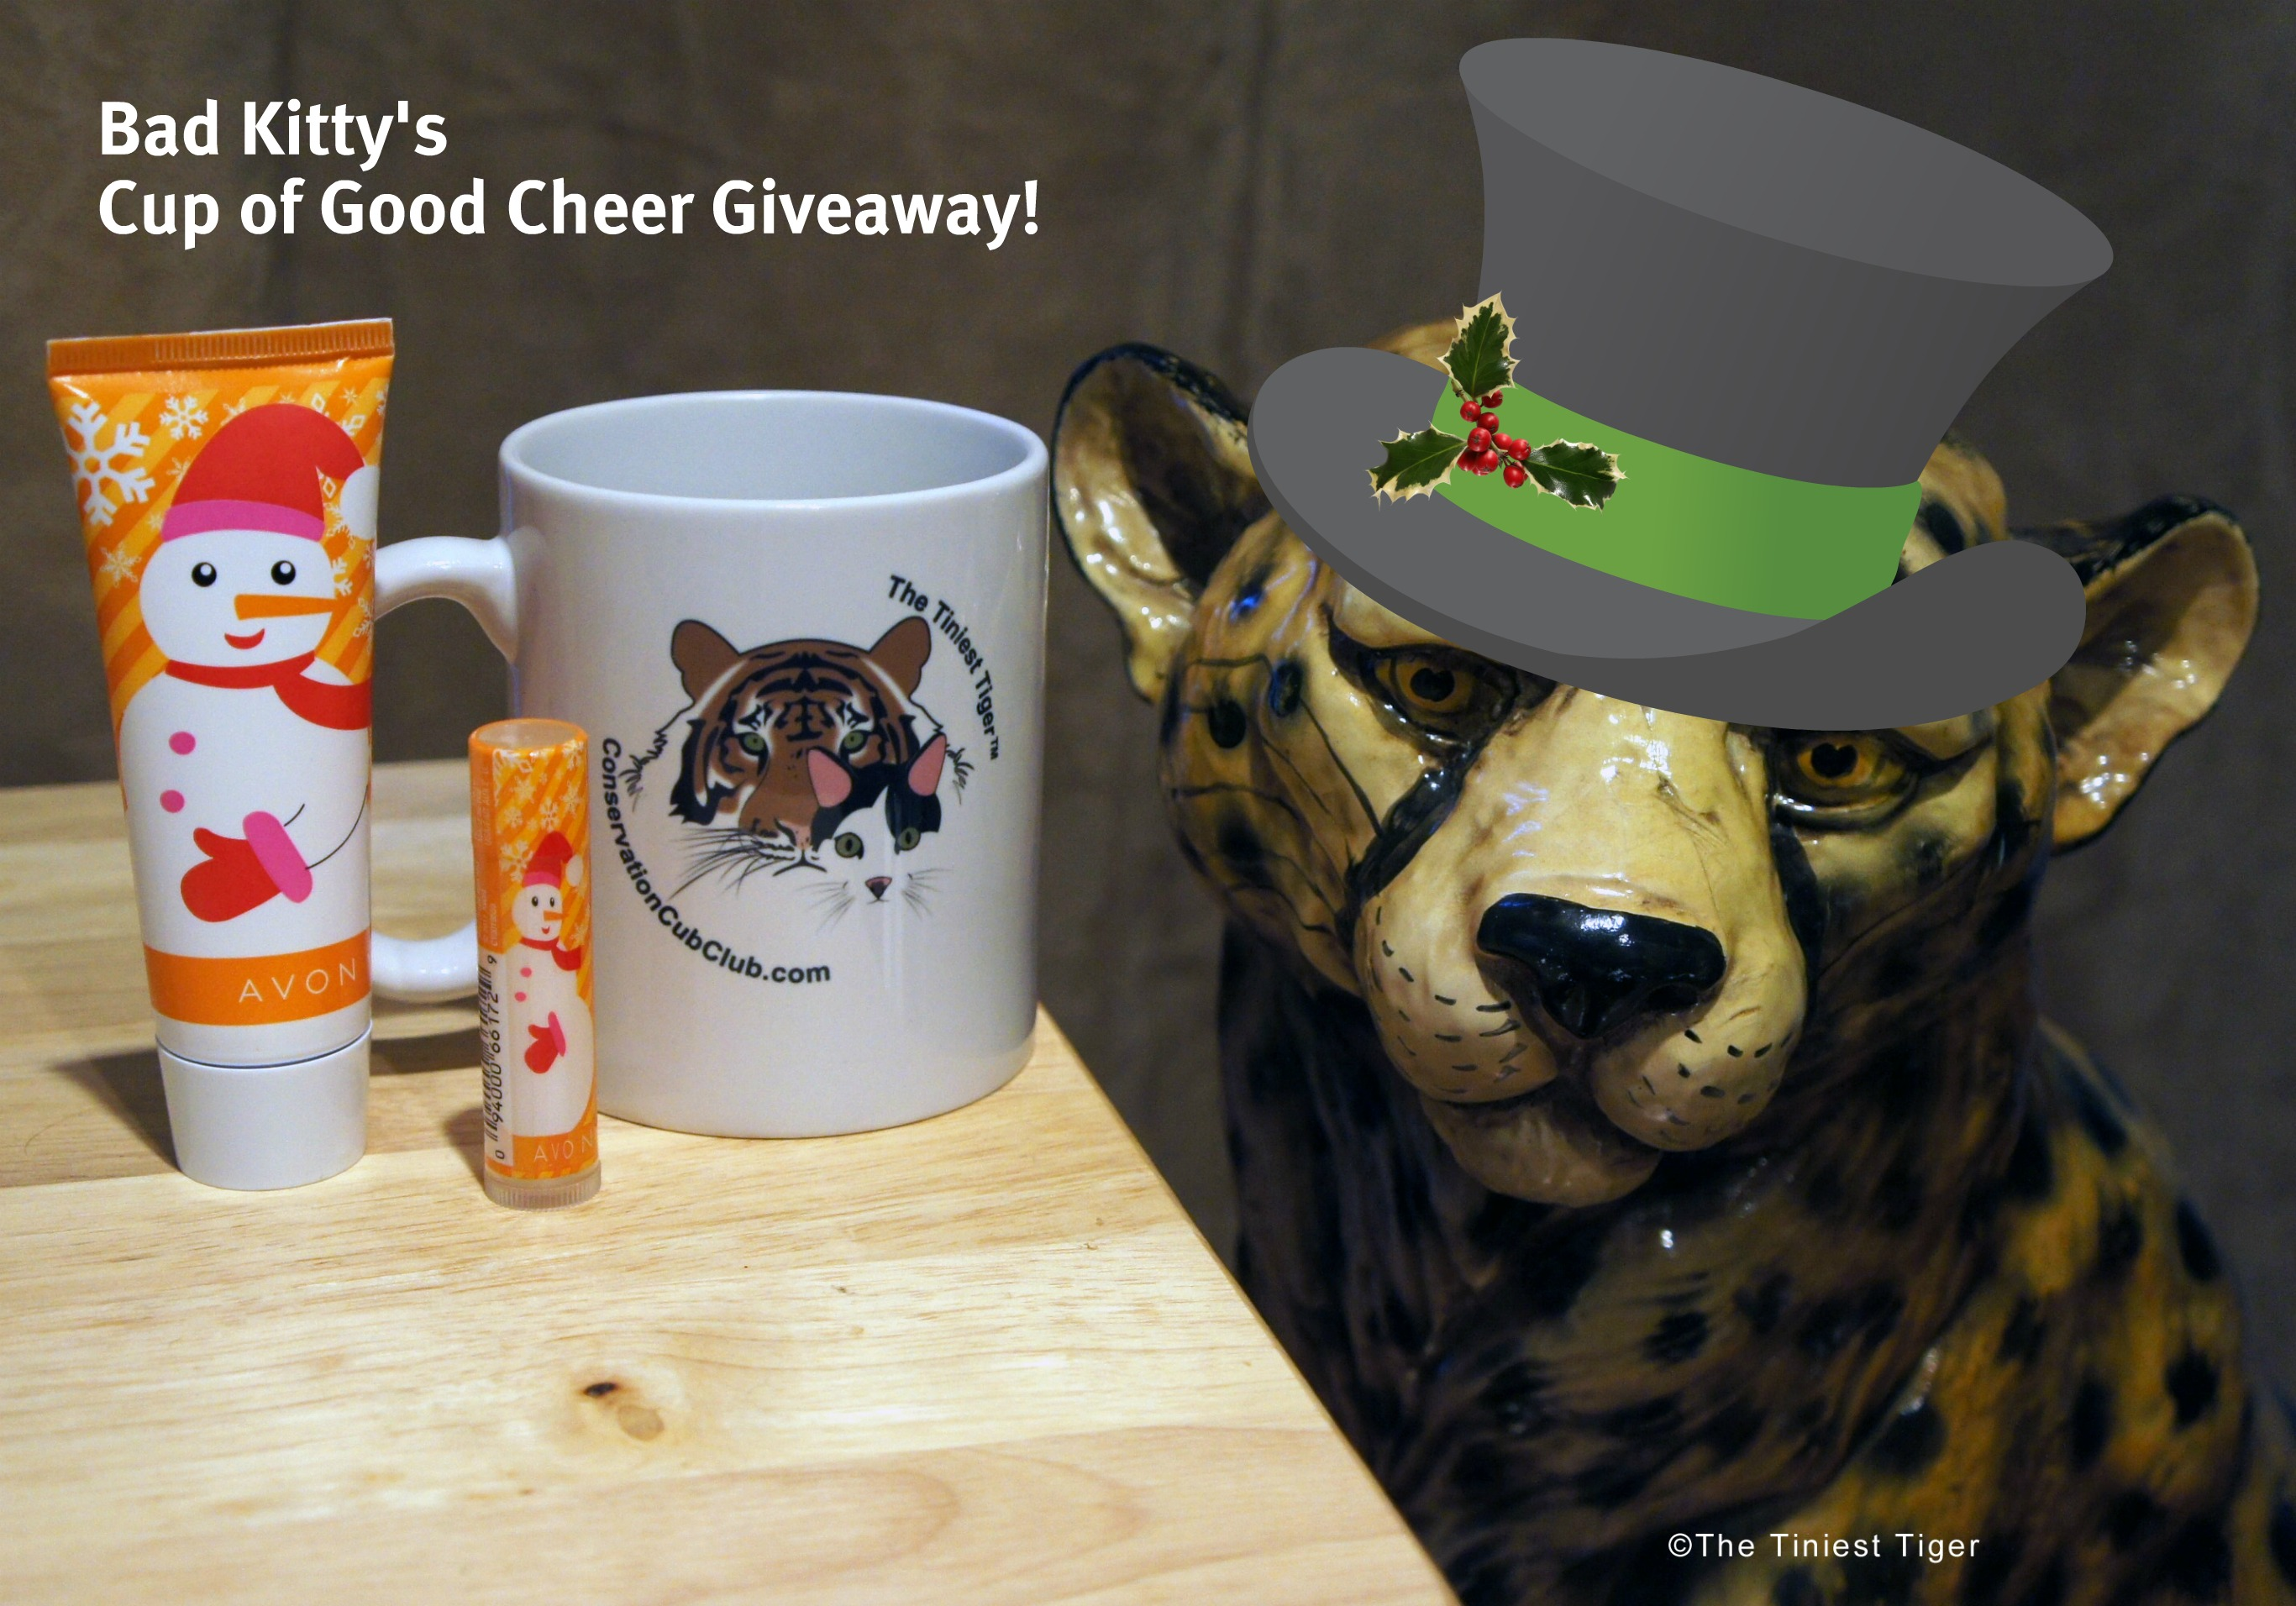 Bring in The New Year with Bad Kitty's Cup of Good Cheer Giveaway!